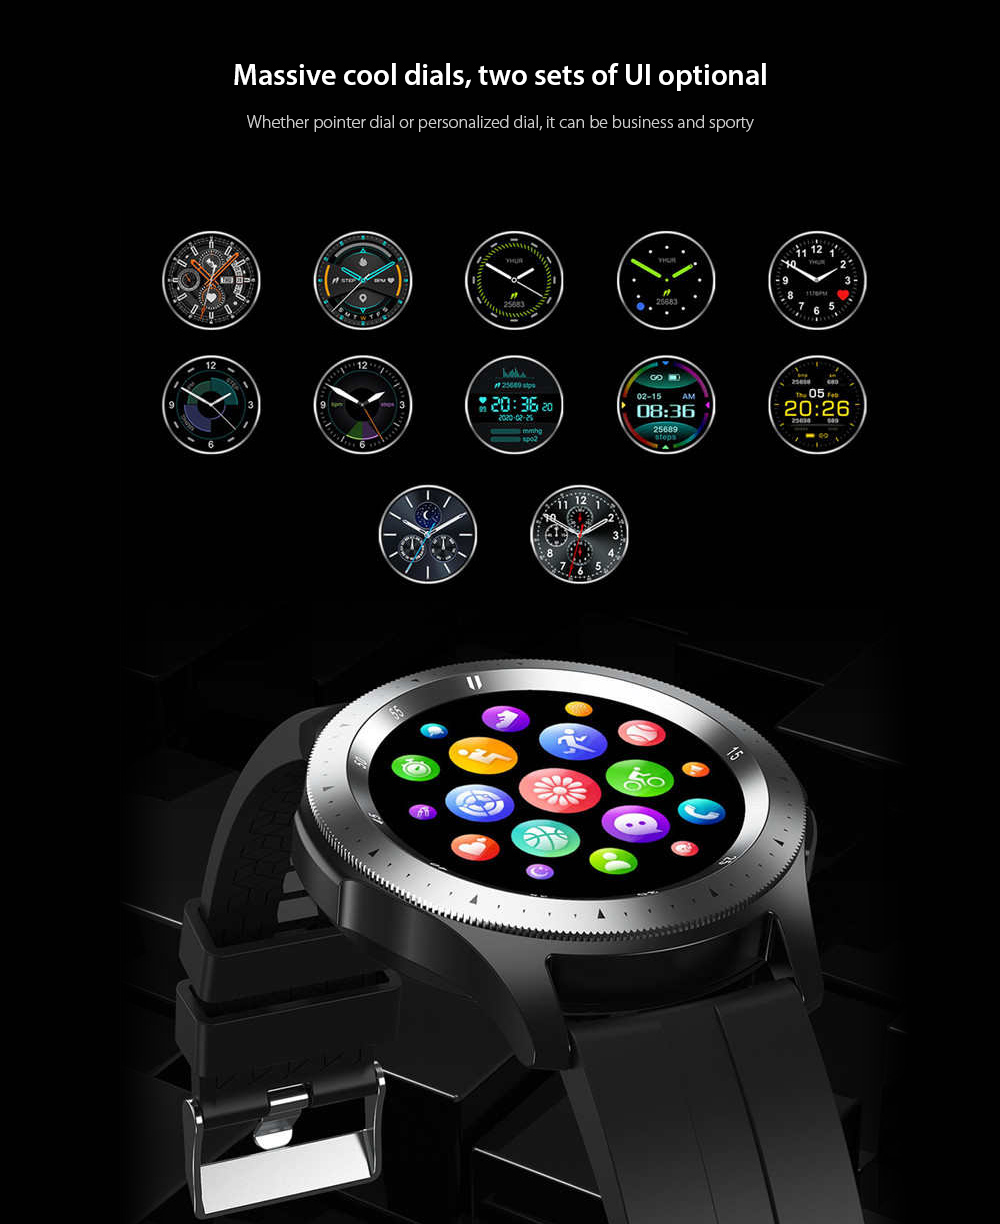 W68 Smart Watch Massive cool dials, two sets of UI optional